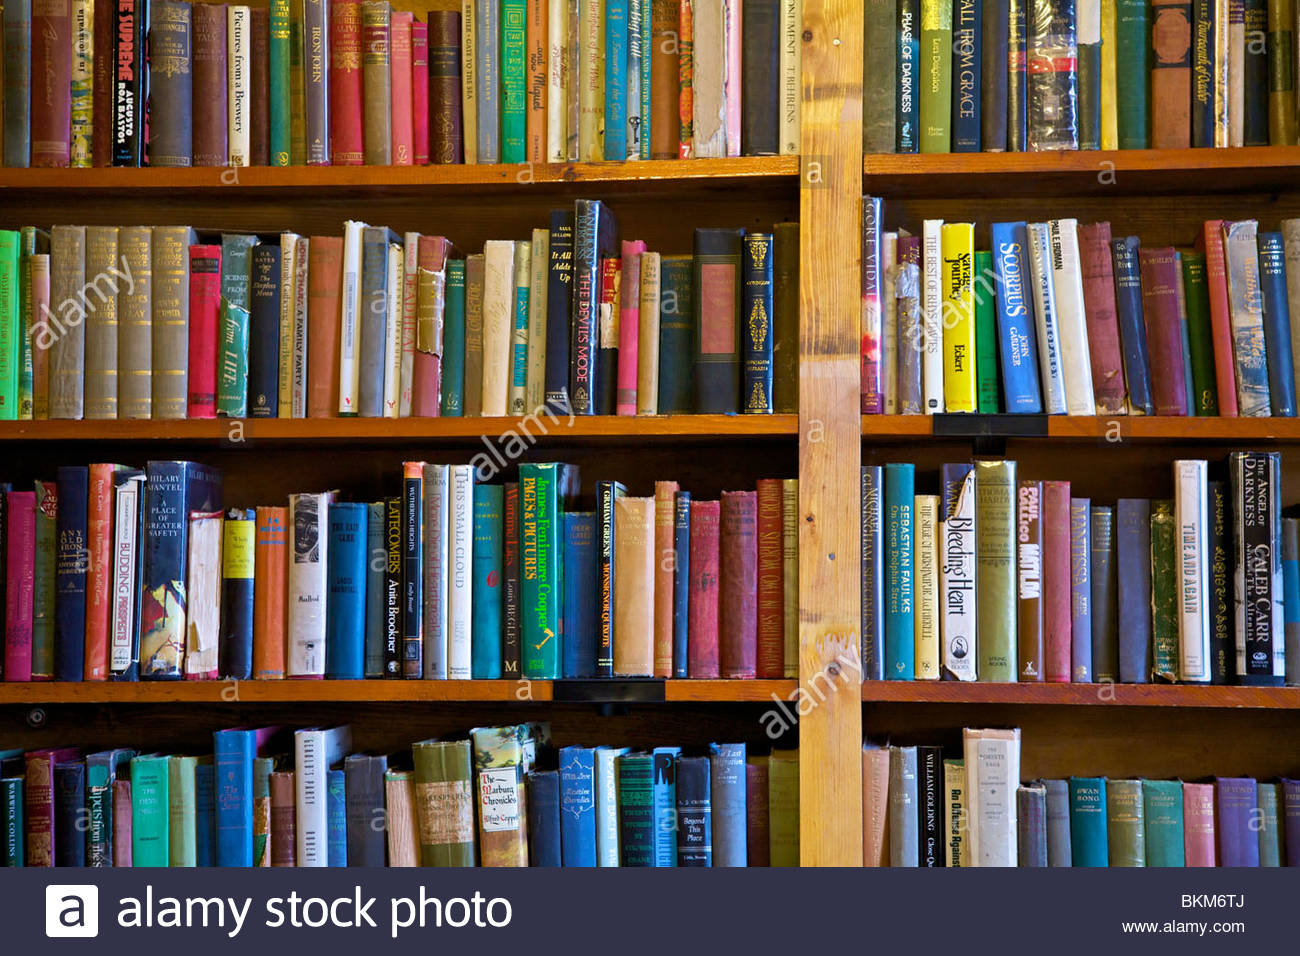 Rows of old books on a bookshelf - Stock Image